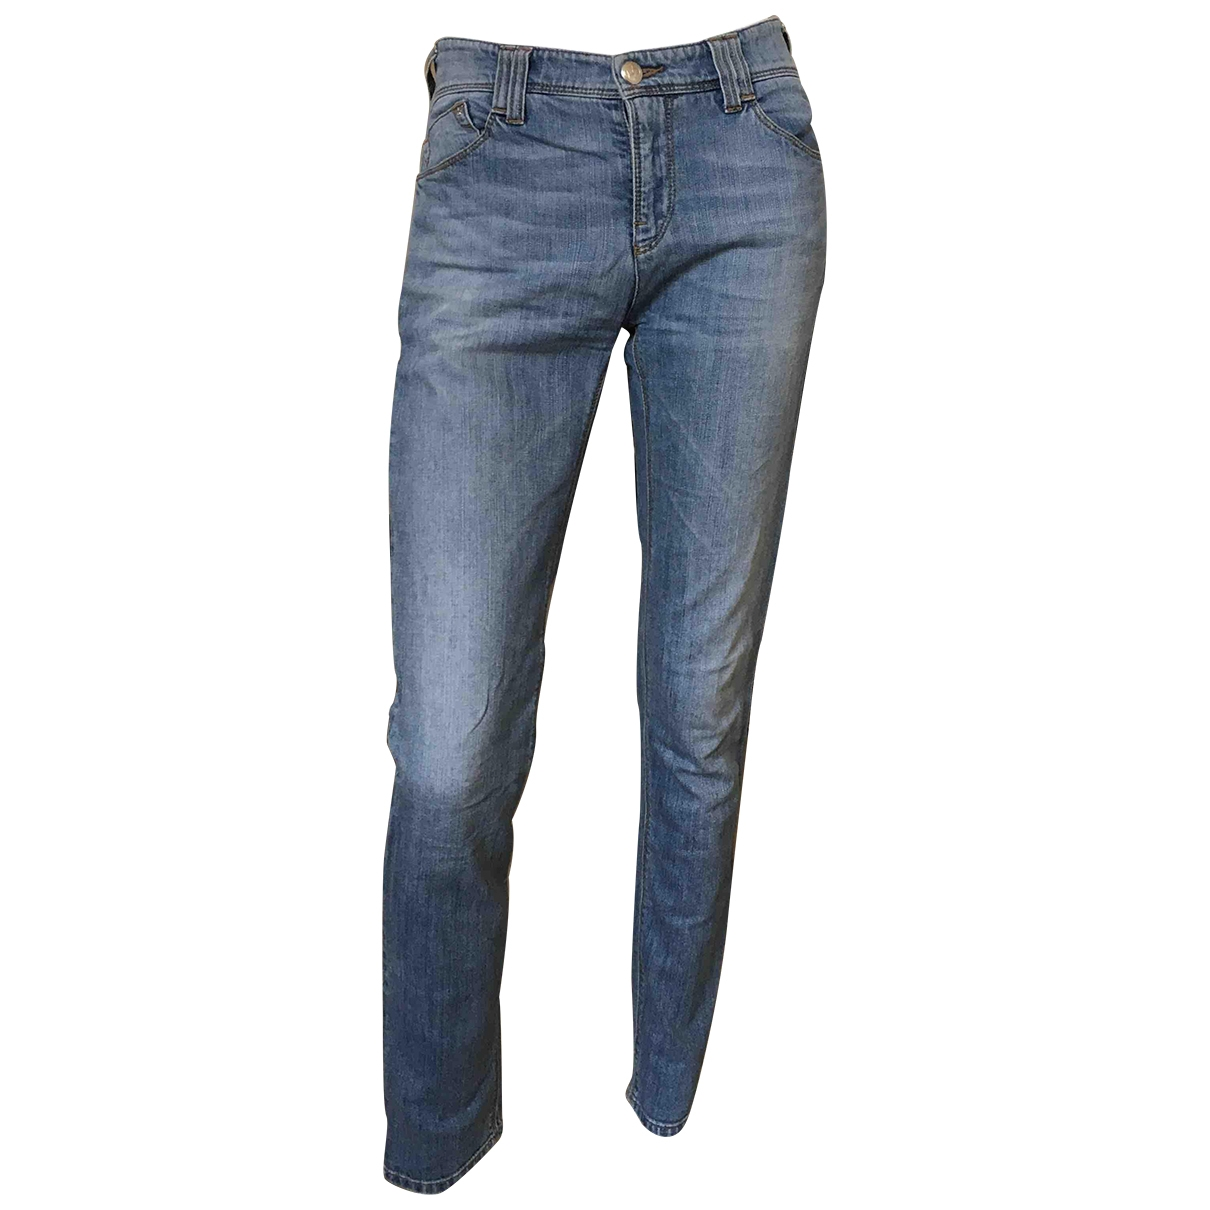 Armani Jeans \N Blue Cotton - elasthane Jeans for Women 28 US